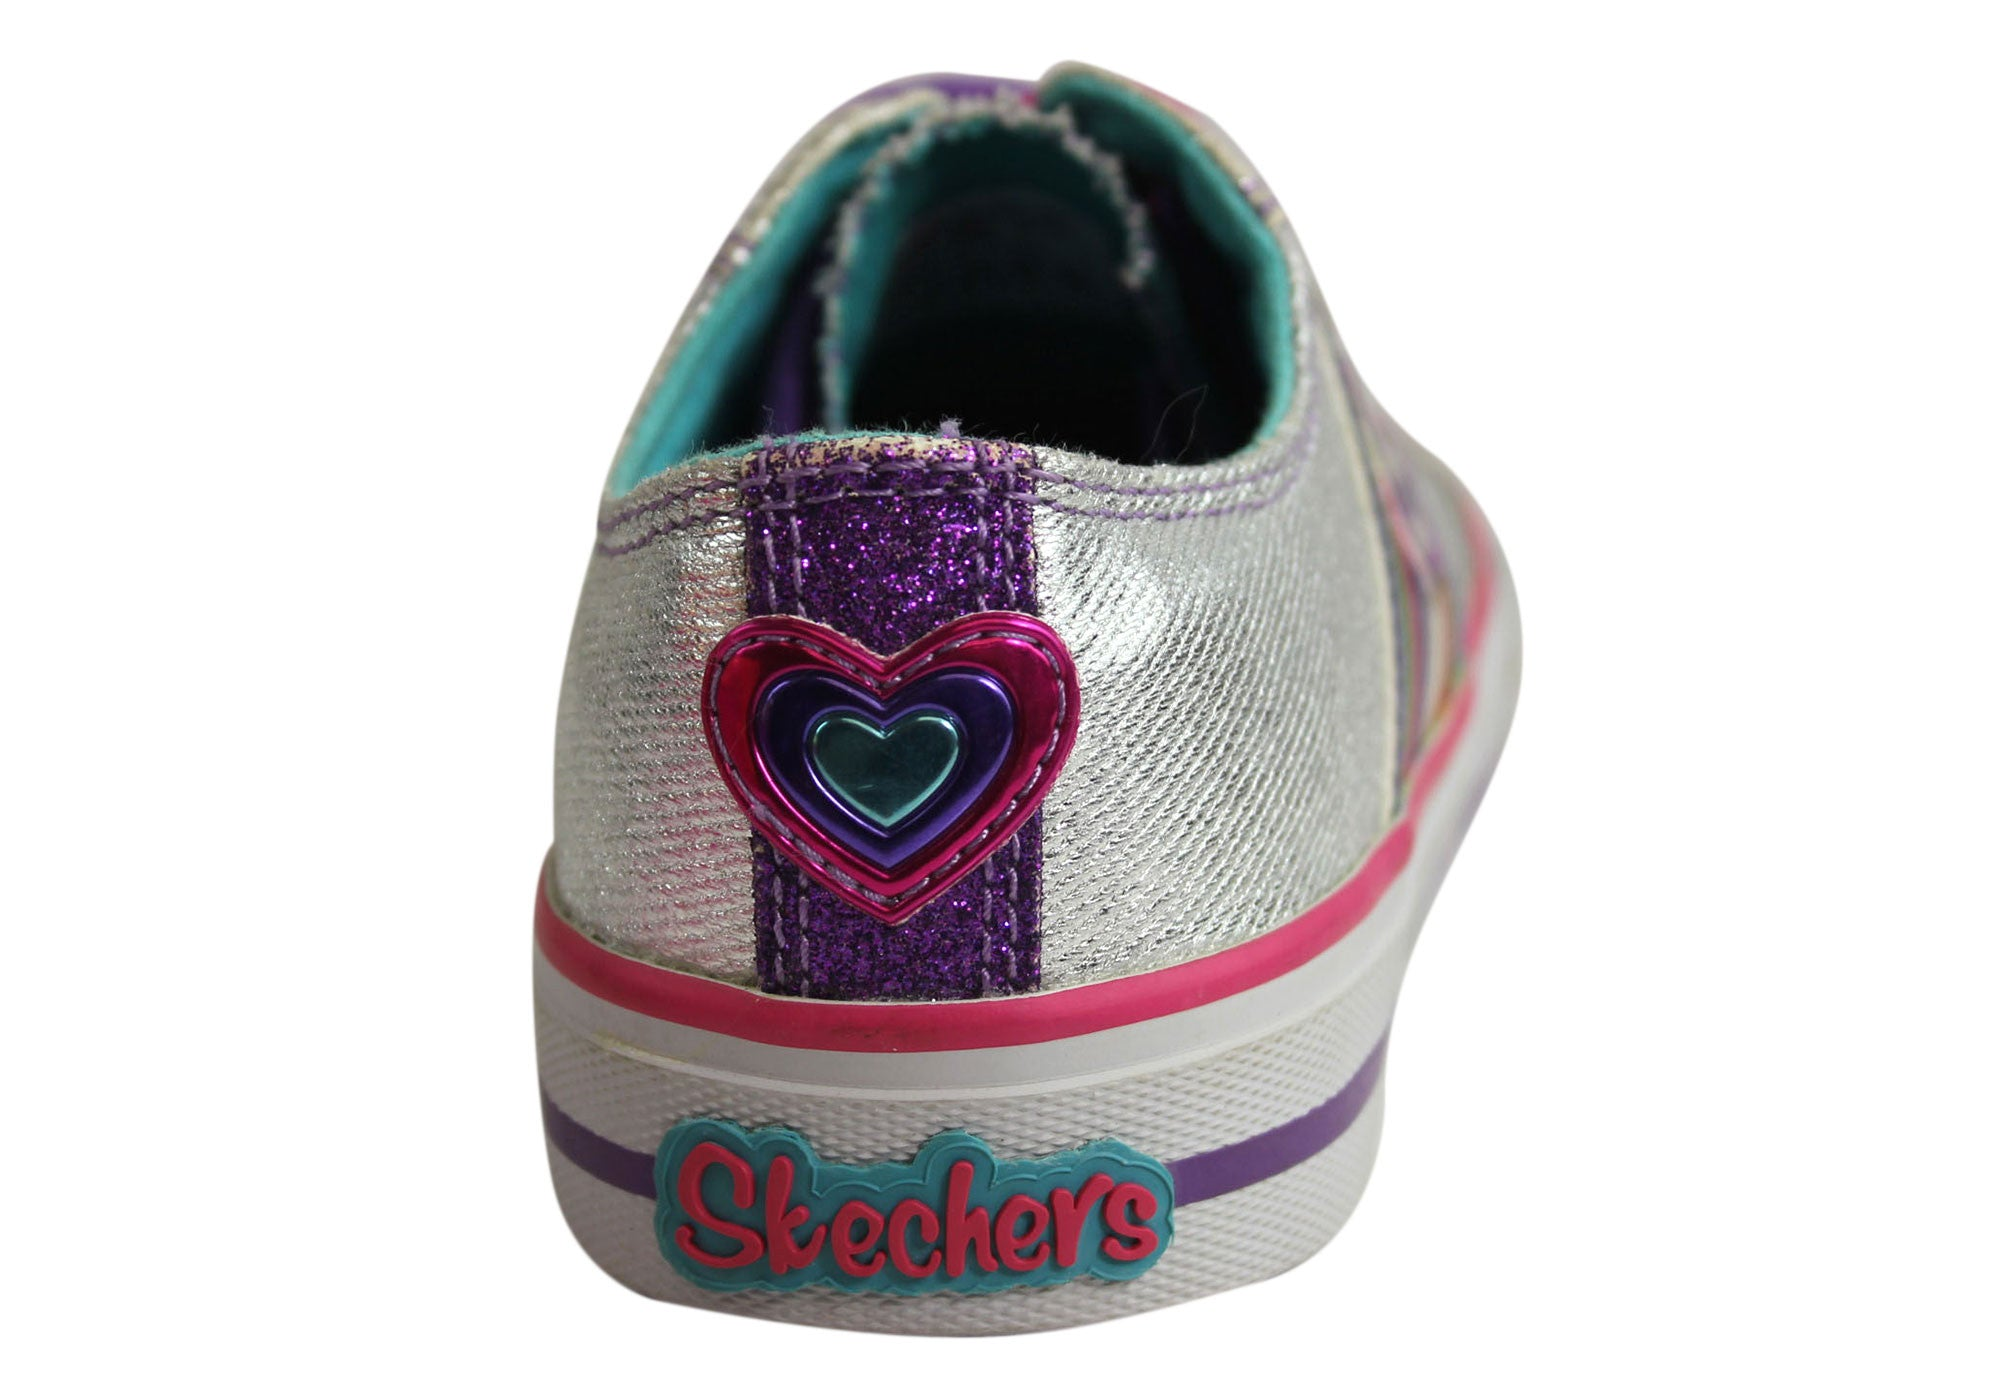 Skechers Sporty Shorty Twinkle Toes Girls Fashion Sneakers